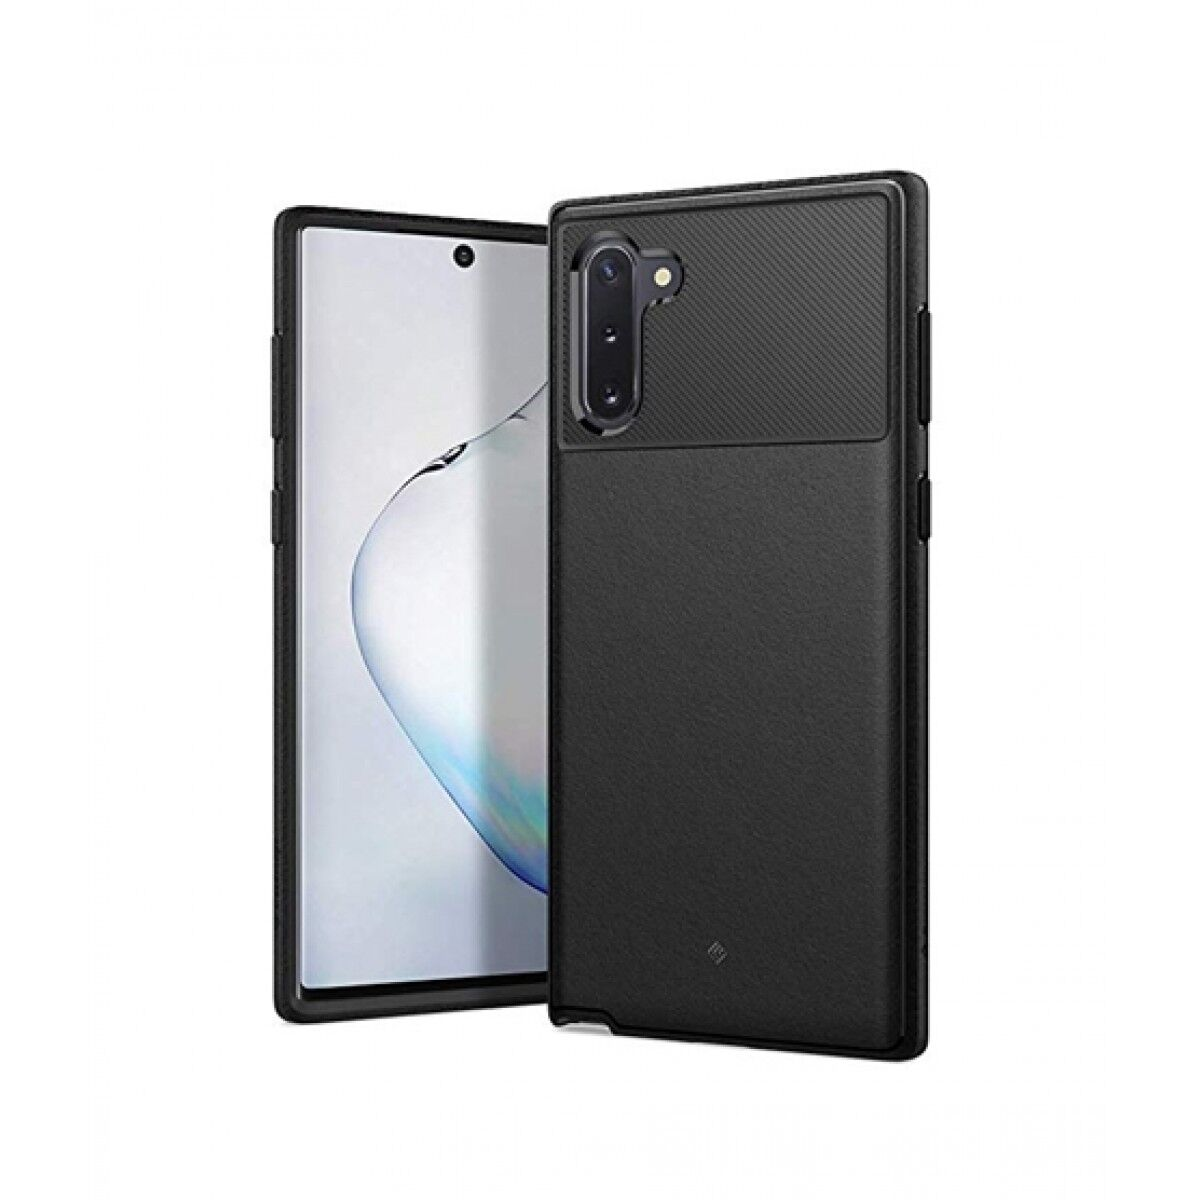 Caseology Vault Matte Black Case For Galaxy Note 10